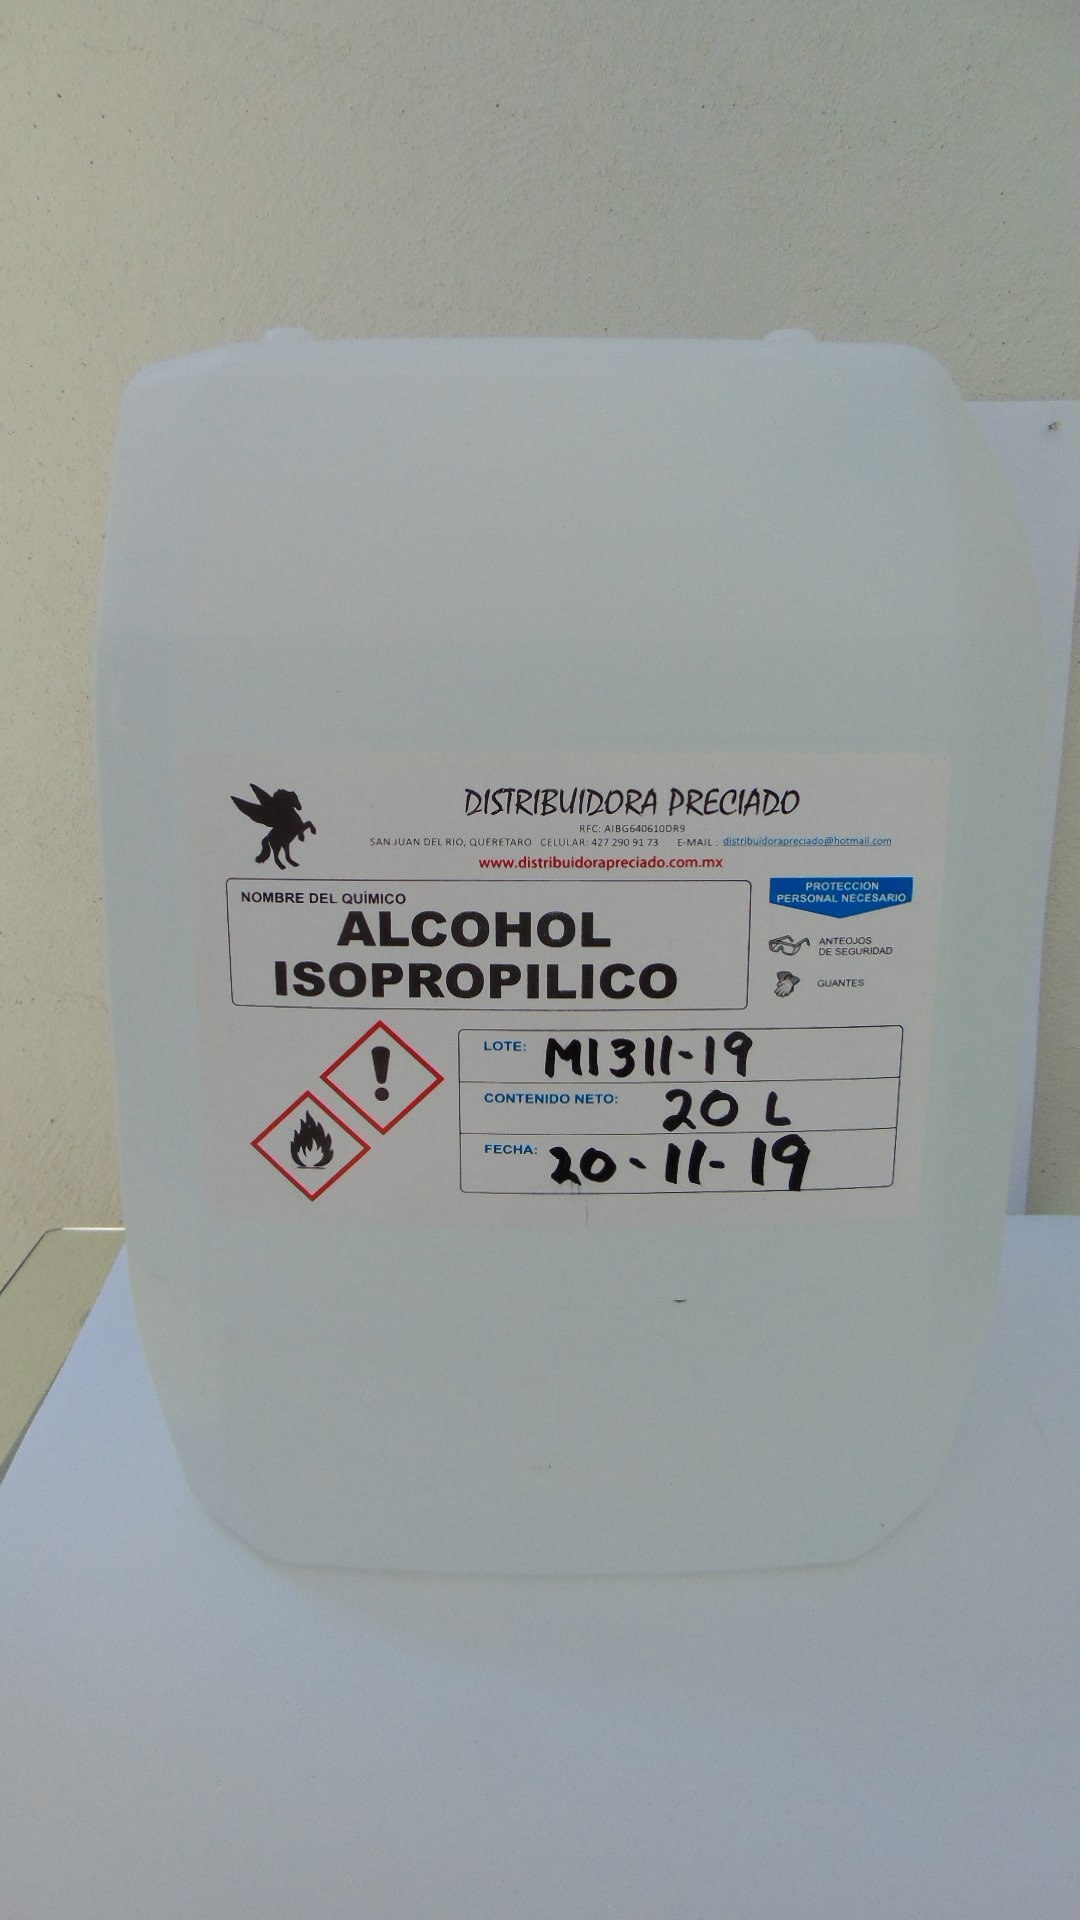 ALCOHOL ISOPROPILICO  (DENSIDAD = 0.785 )